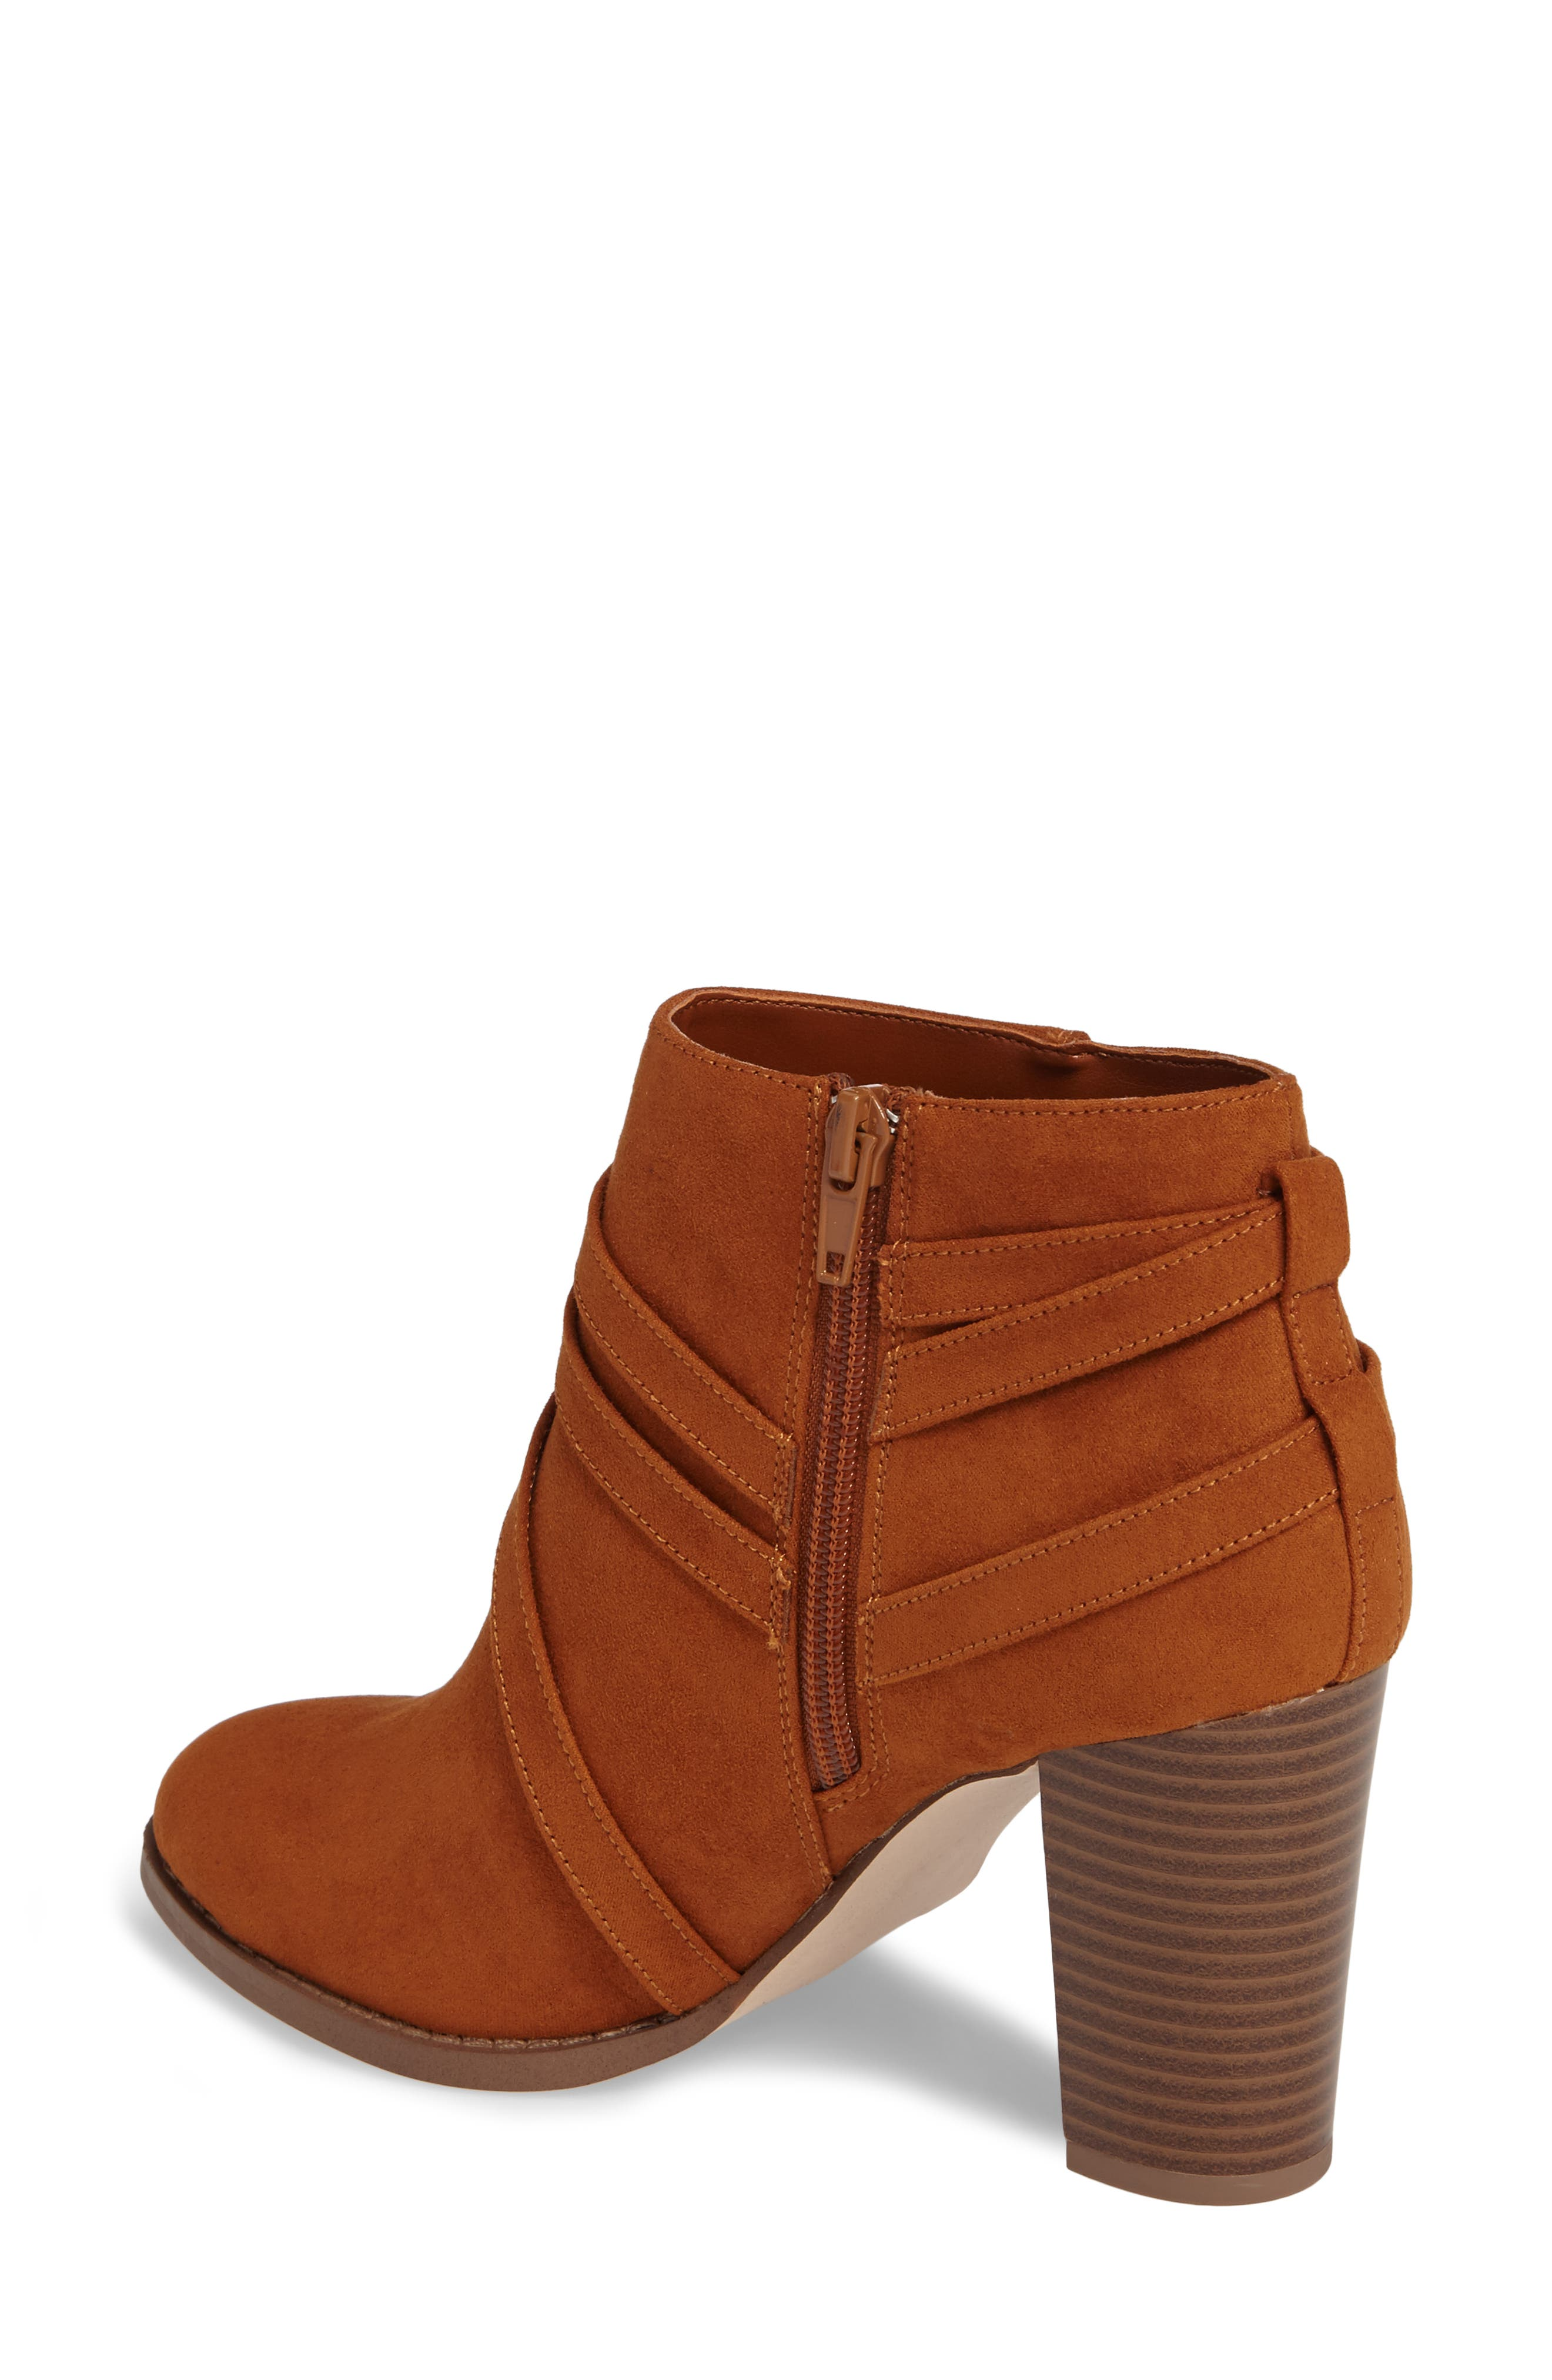 Renly Bootie,                             Alternate thumbnail 2, color,                             Tan Suede